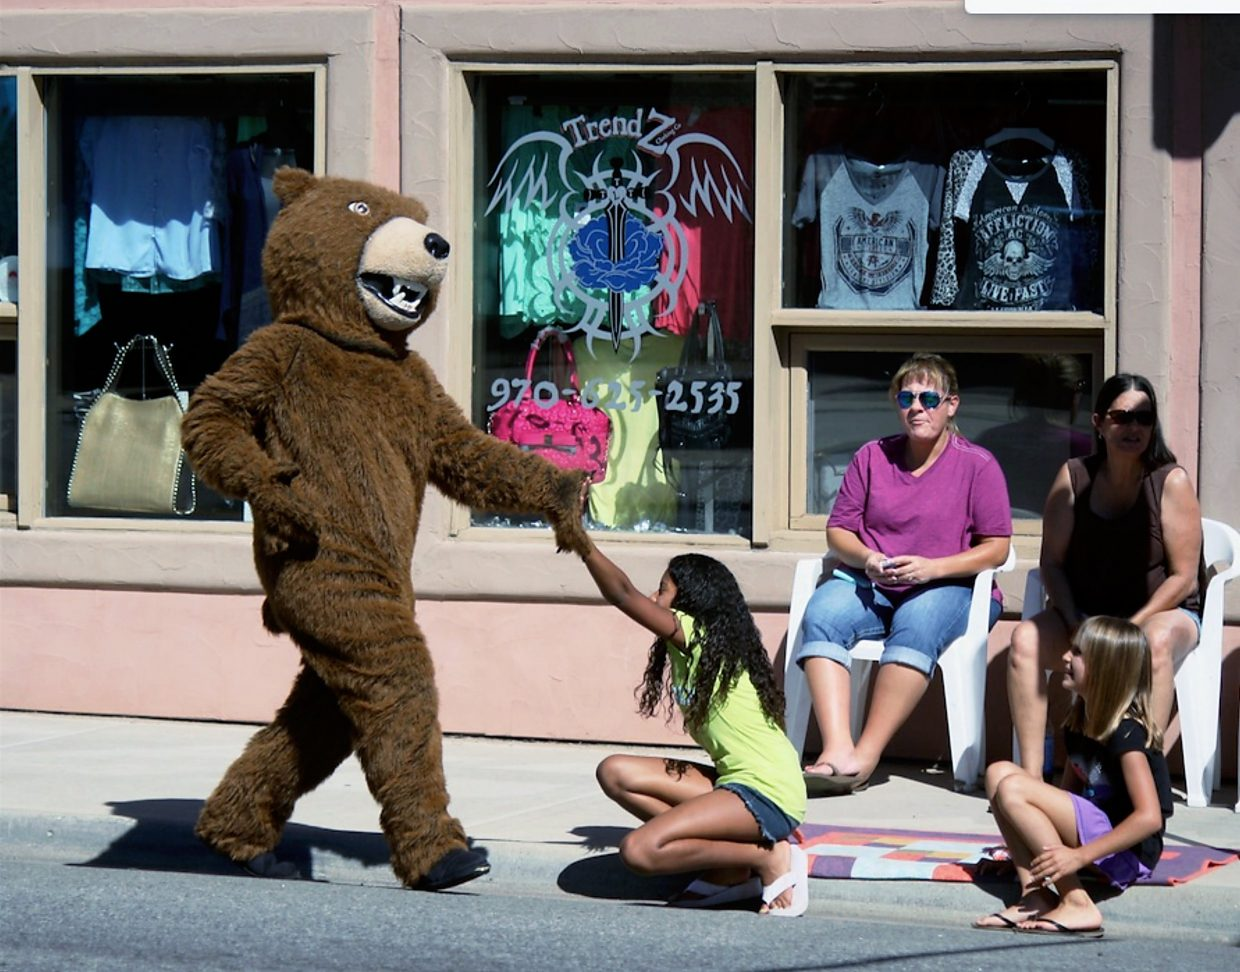 The Rifle Bears mascot stops to high-five Jadah McDaniels, left, and Jaylynne Fusilier during the Rifle homecoming parade Friday on Railroad Avenue.